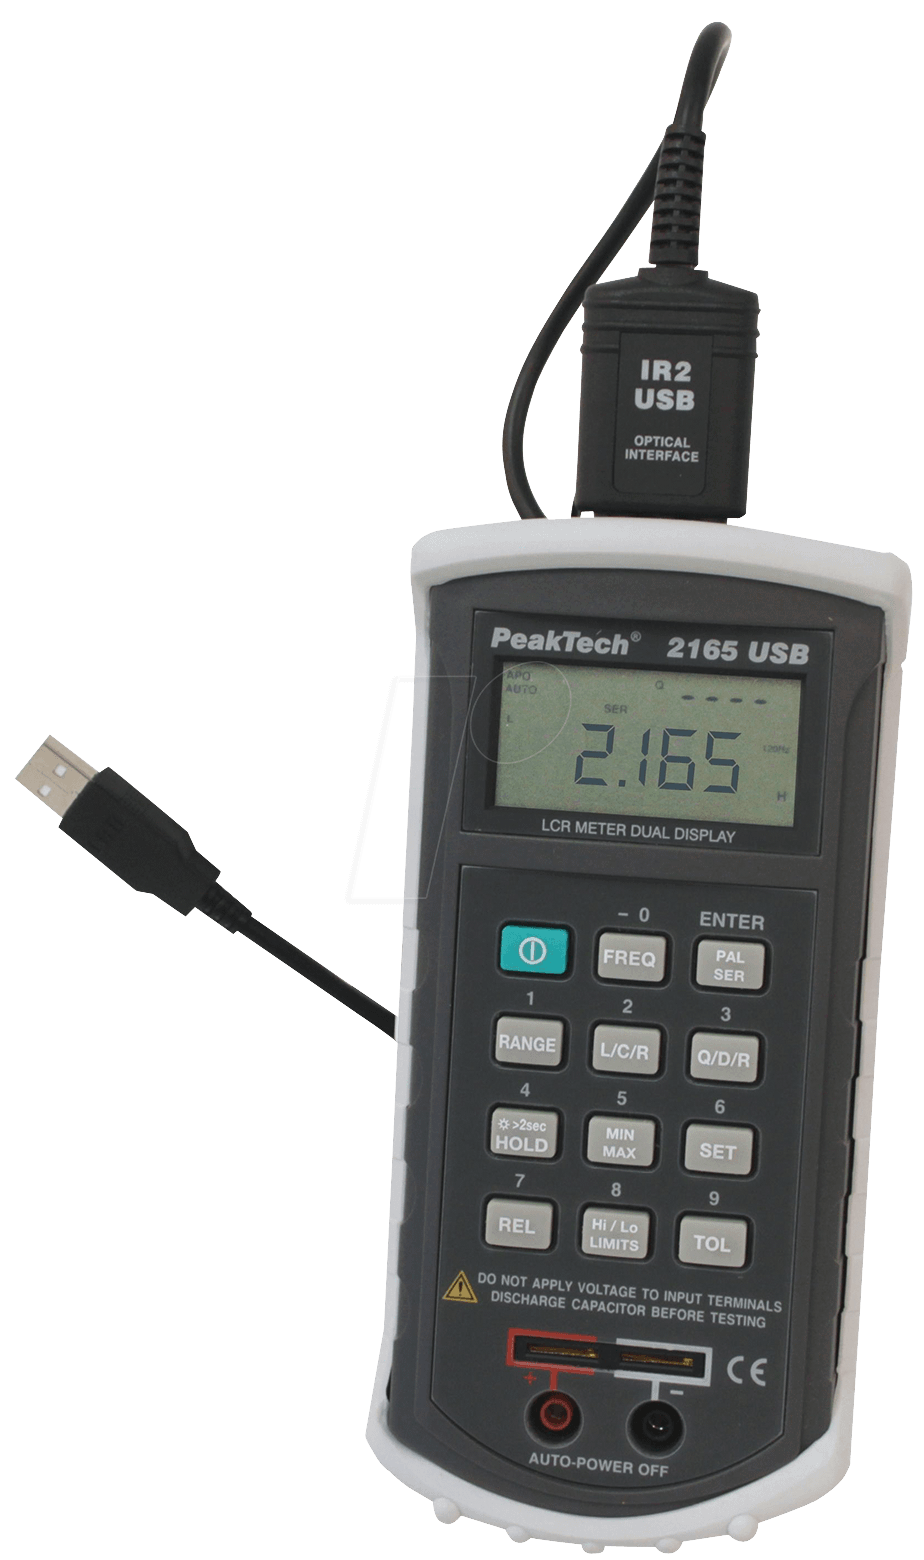 PeakTech 2165 digital LCR measuring instrument with USB PEAKTECH 2165